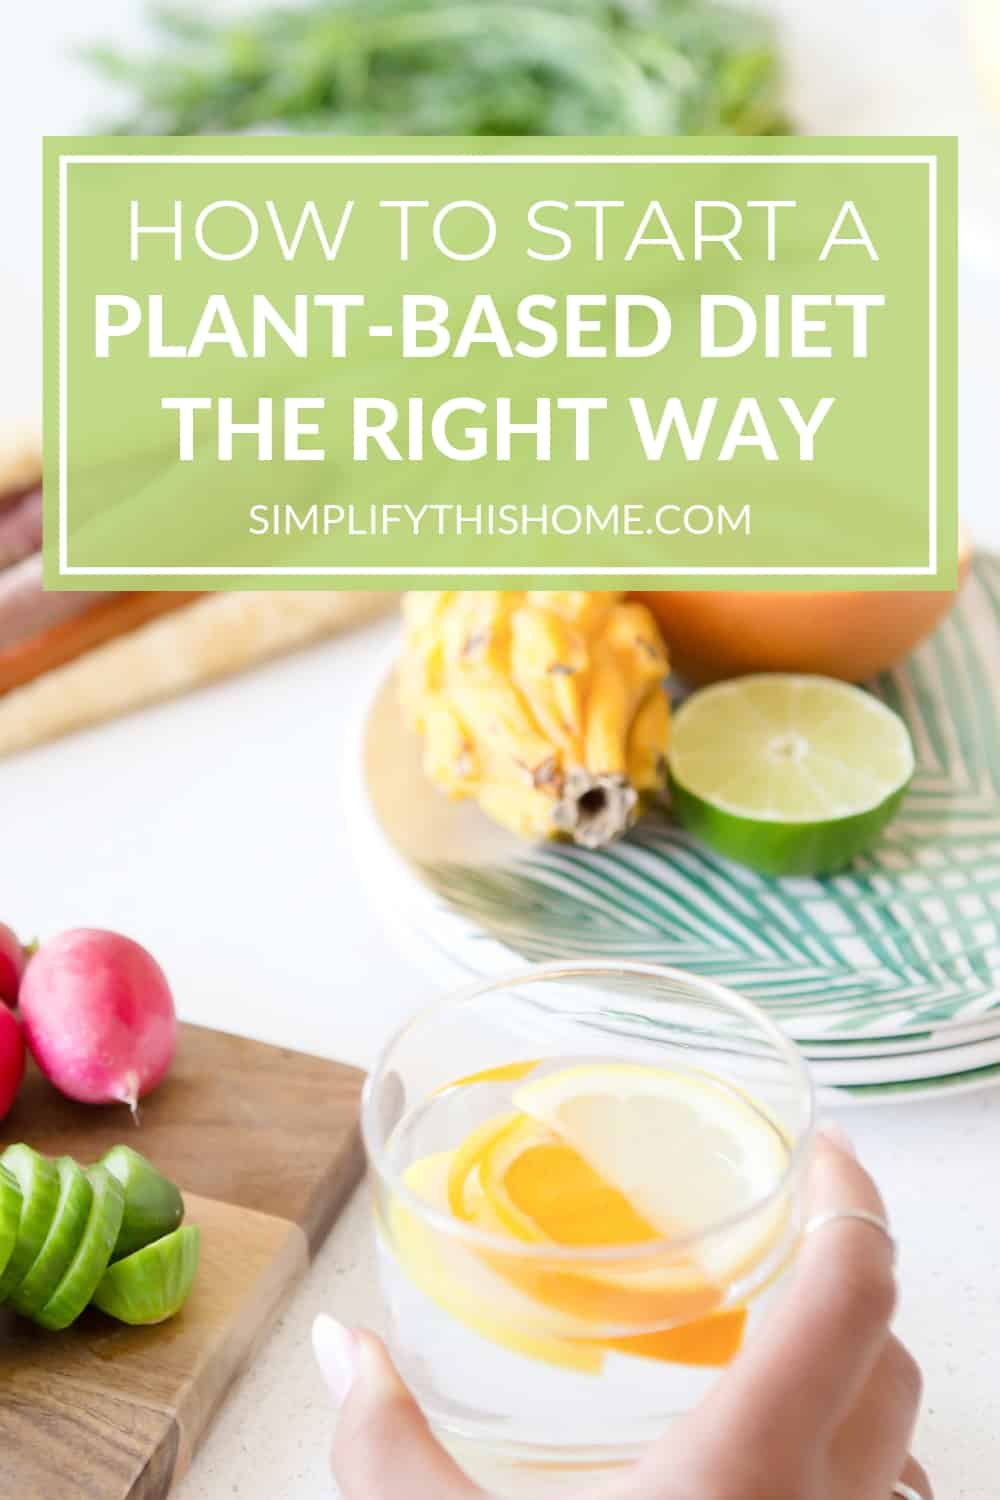 How to start a plant-based diet the right way